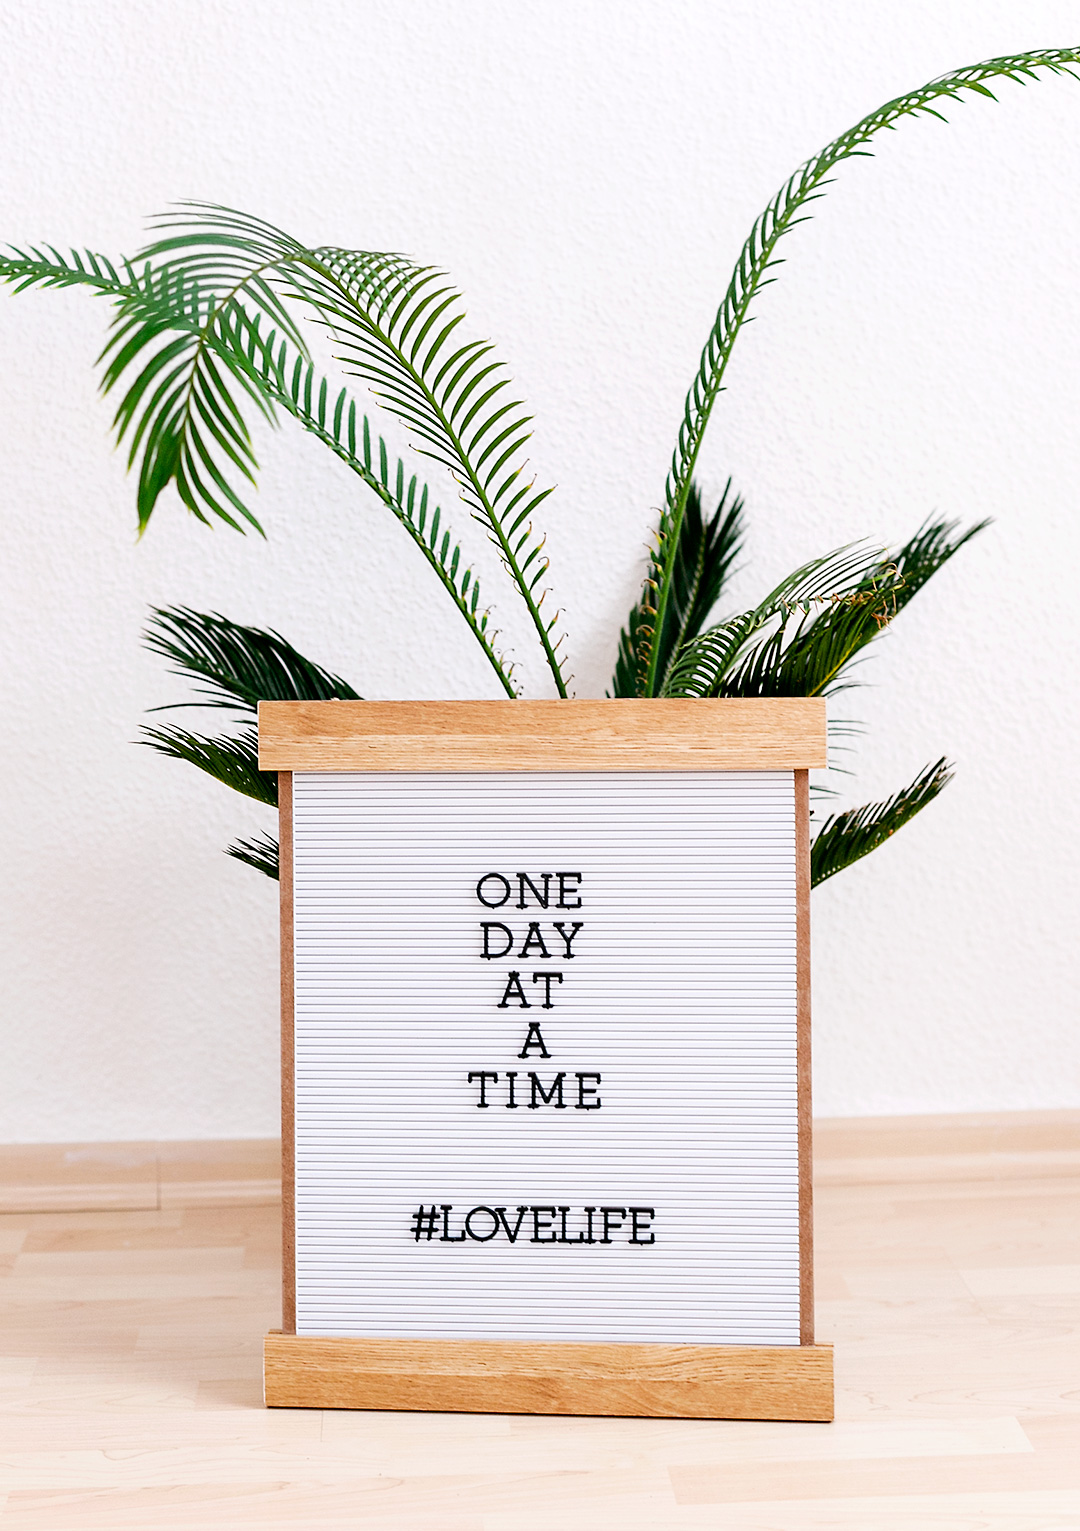 One day at a time quote on a wooden letterboard